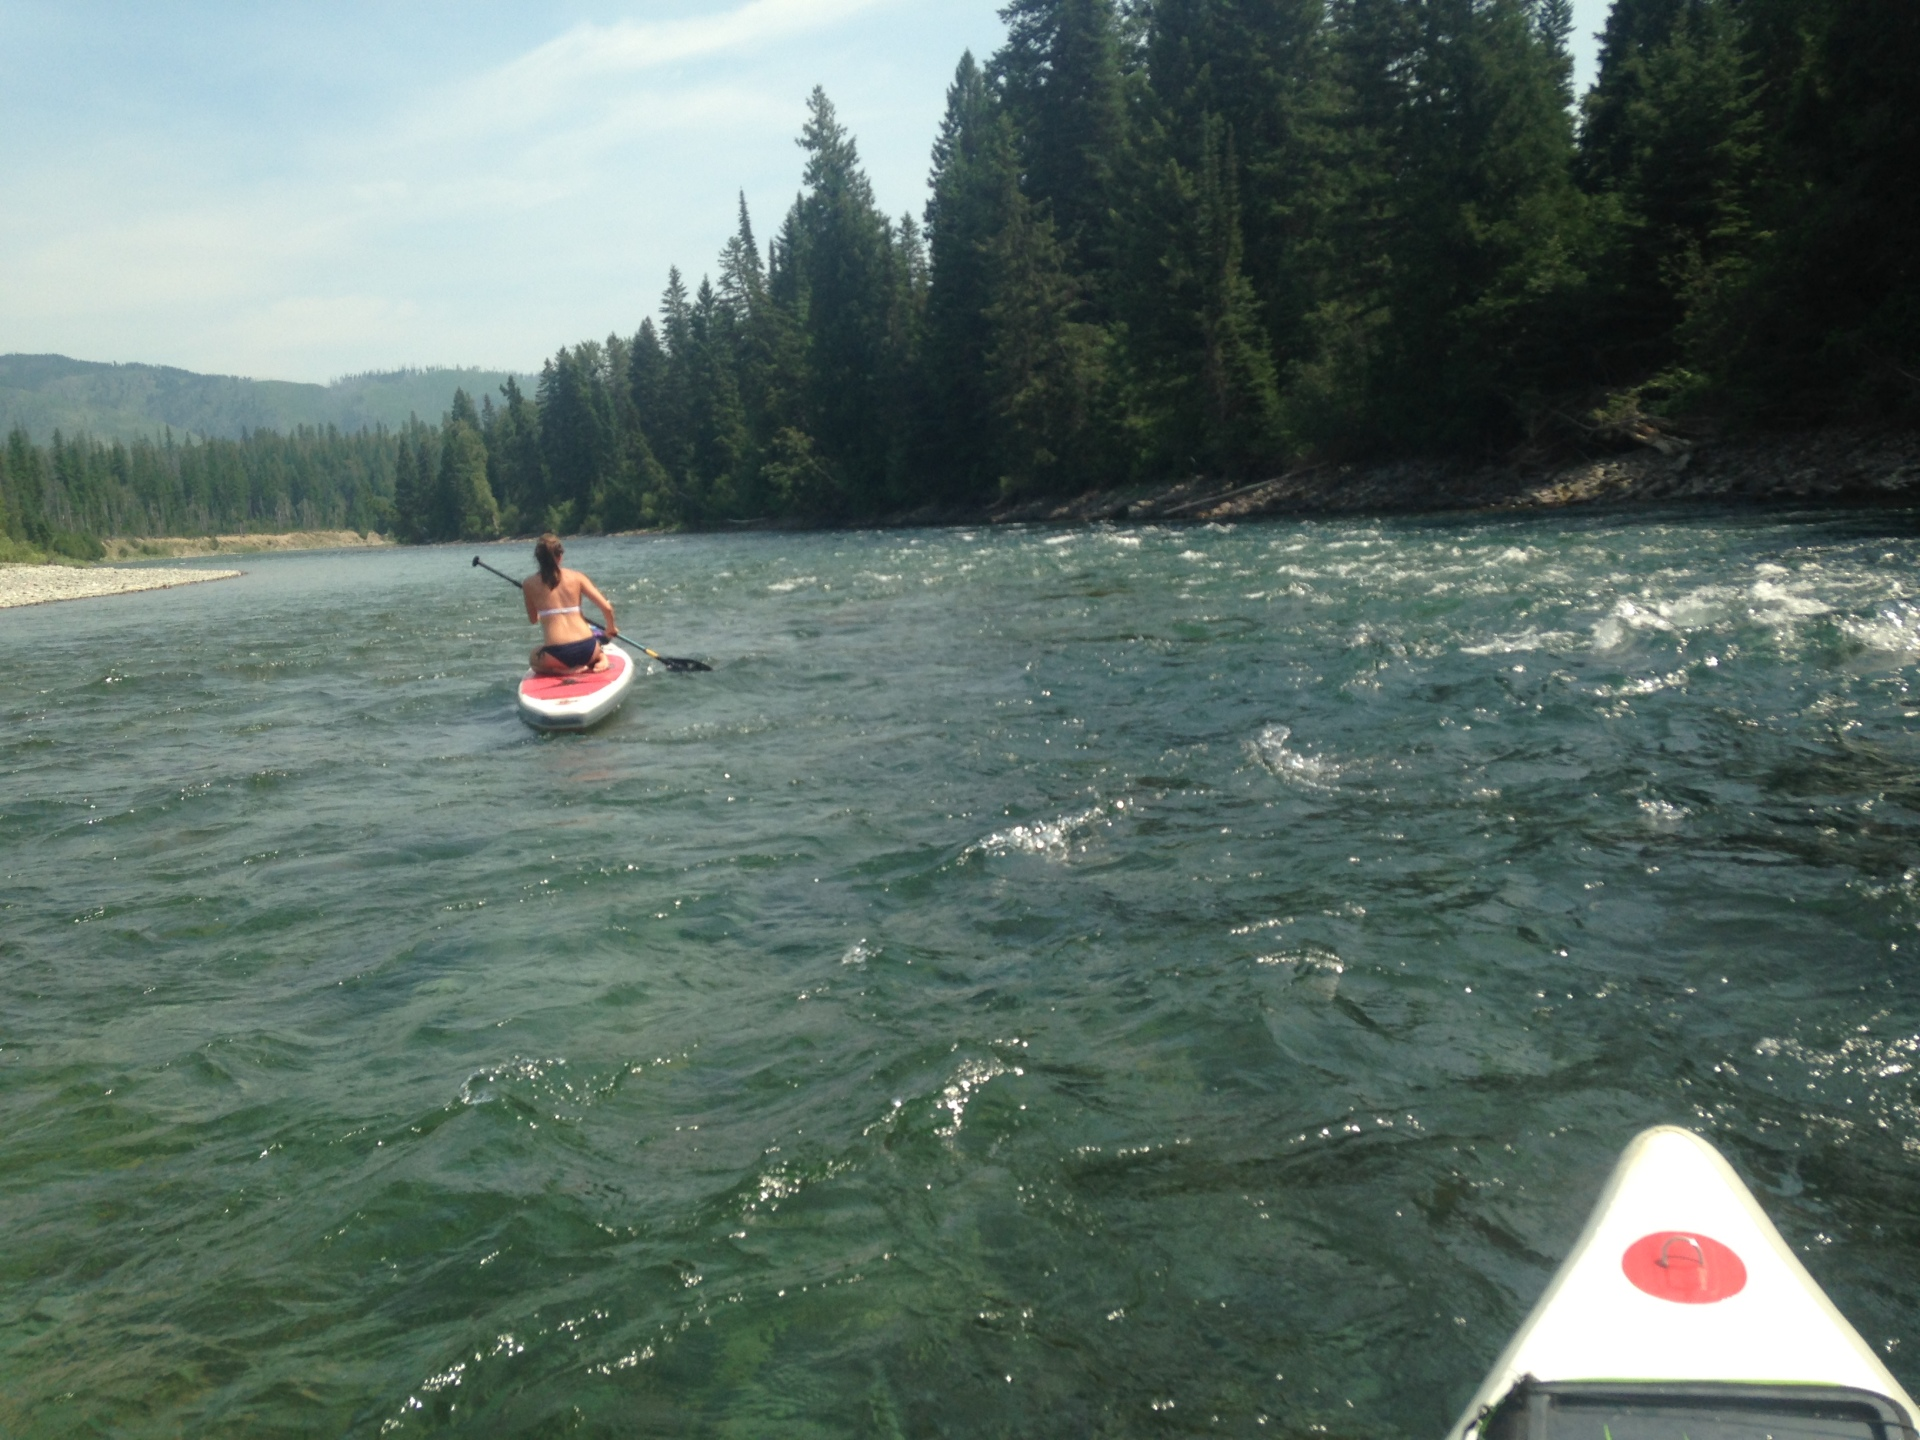 Paddle board action on the Flathead River